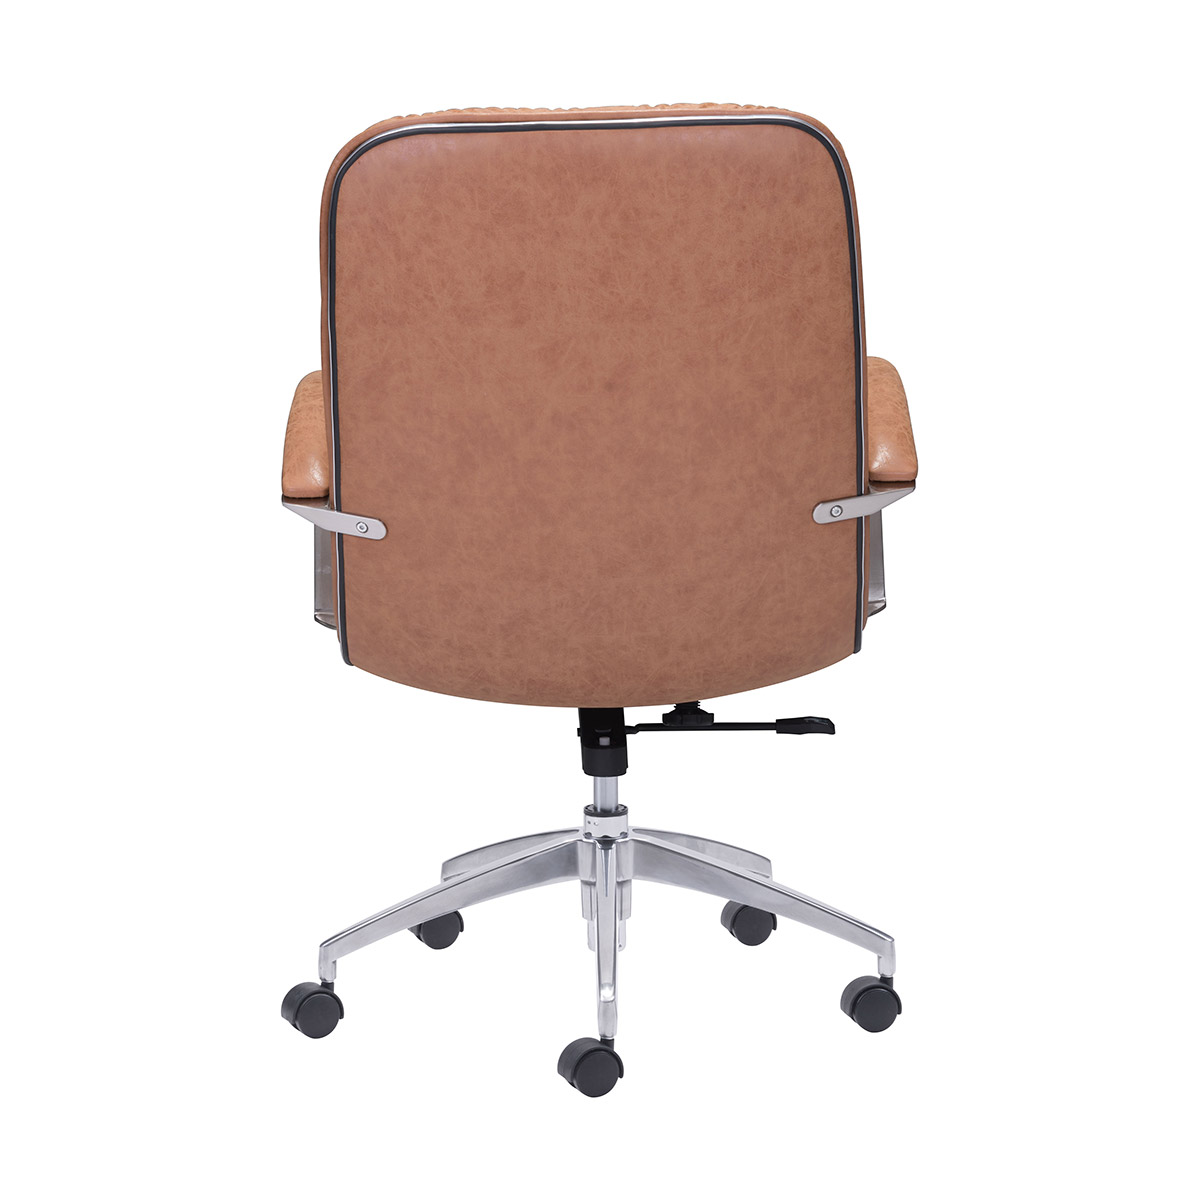 office chair vintage. The Product Is Already In Wishlist! Browse Wishlist Office Chair Vintage